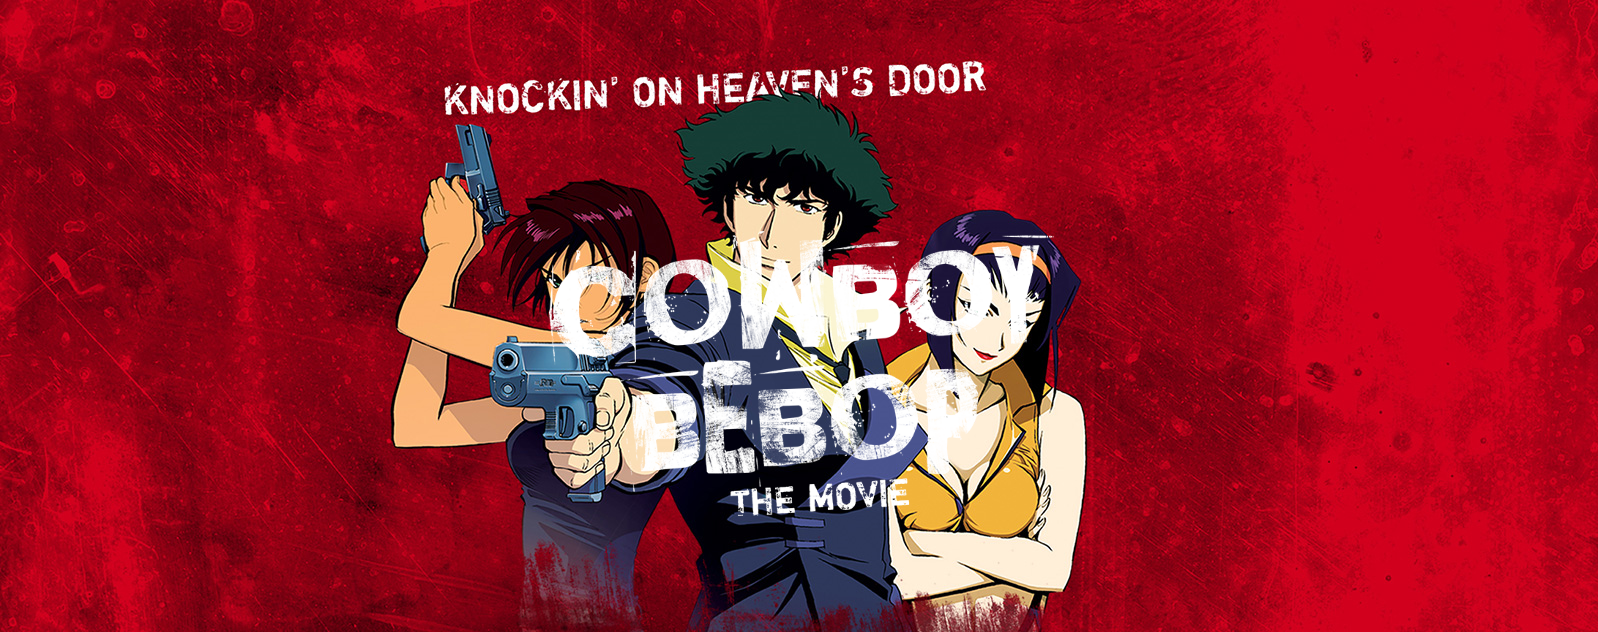 NEWS: FUNimation Releasing Cowboy Bebop the Movie in select Theaters August 15th and August 16th